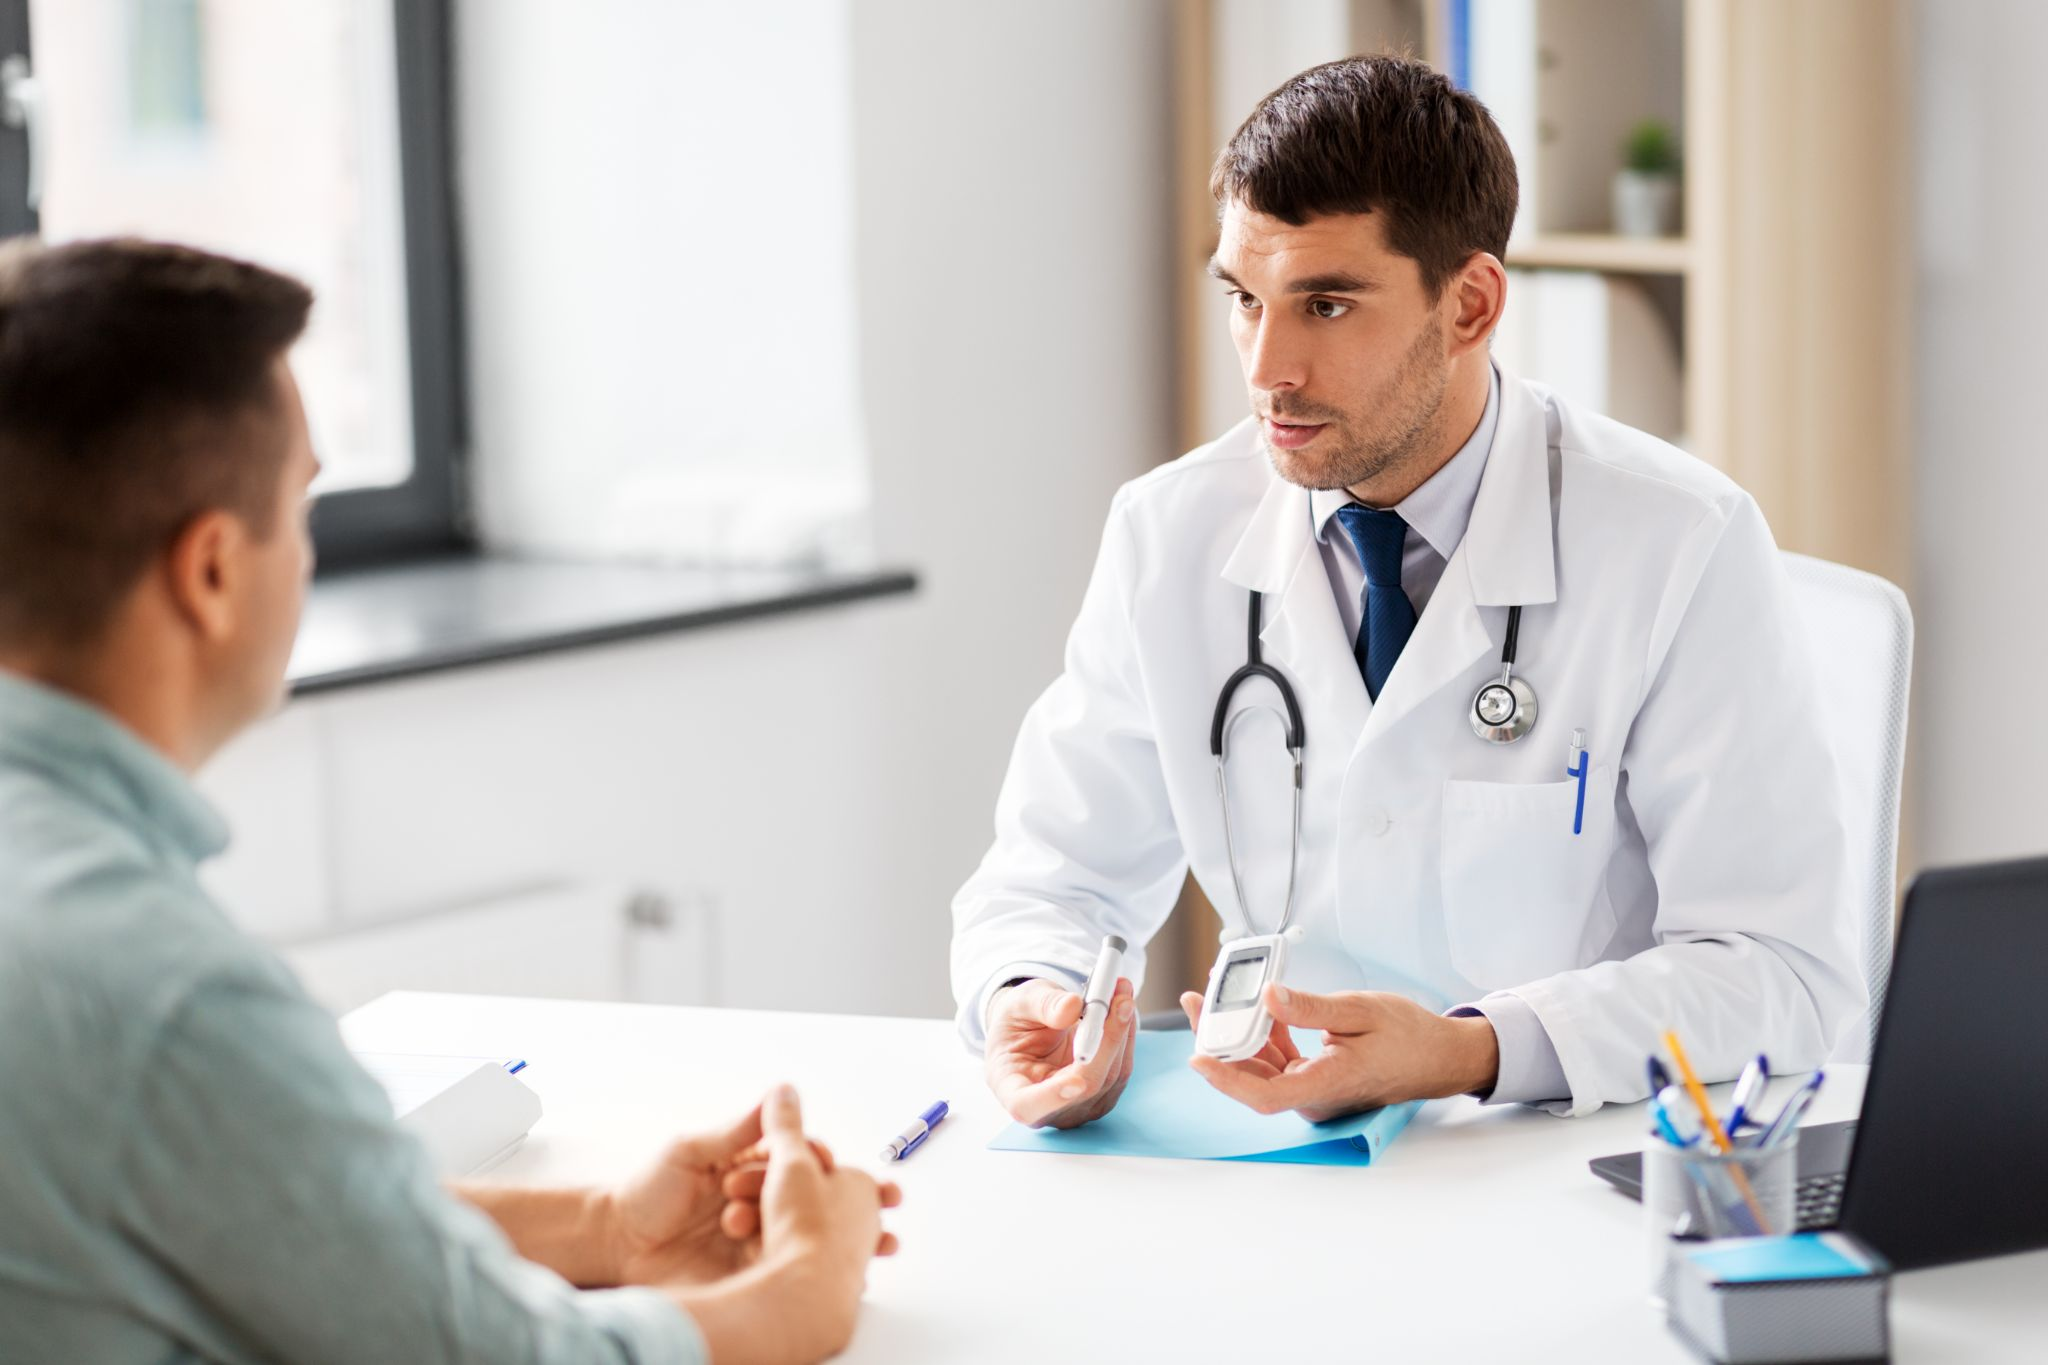 doctor with glucometer and insulin pen device talking to male patient